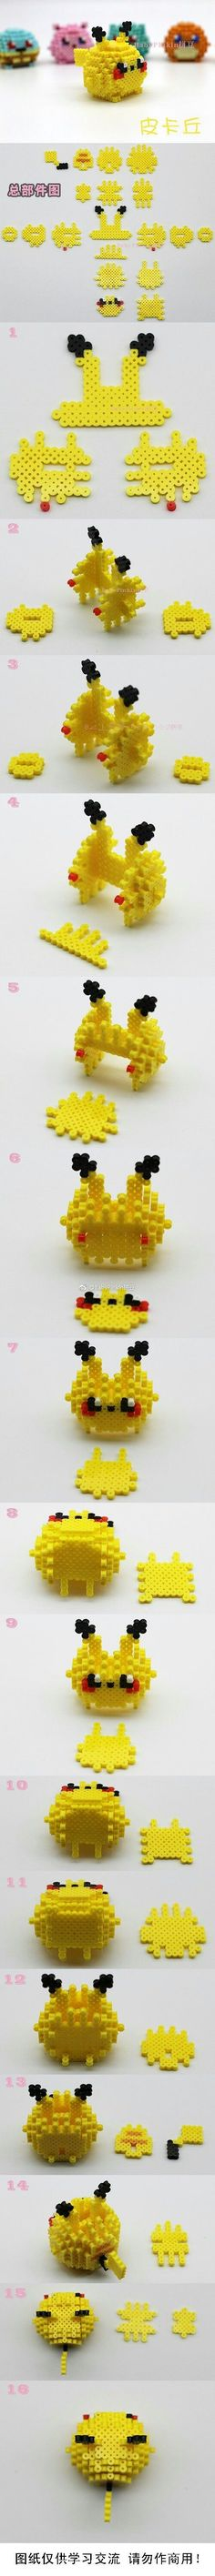 3d pikachu pokemon